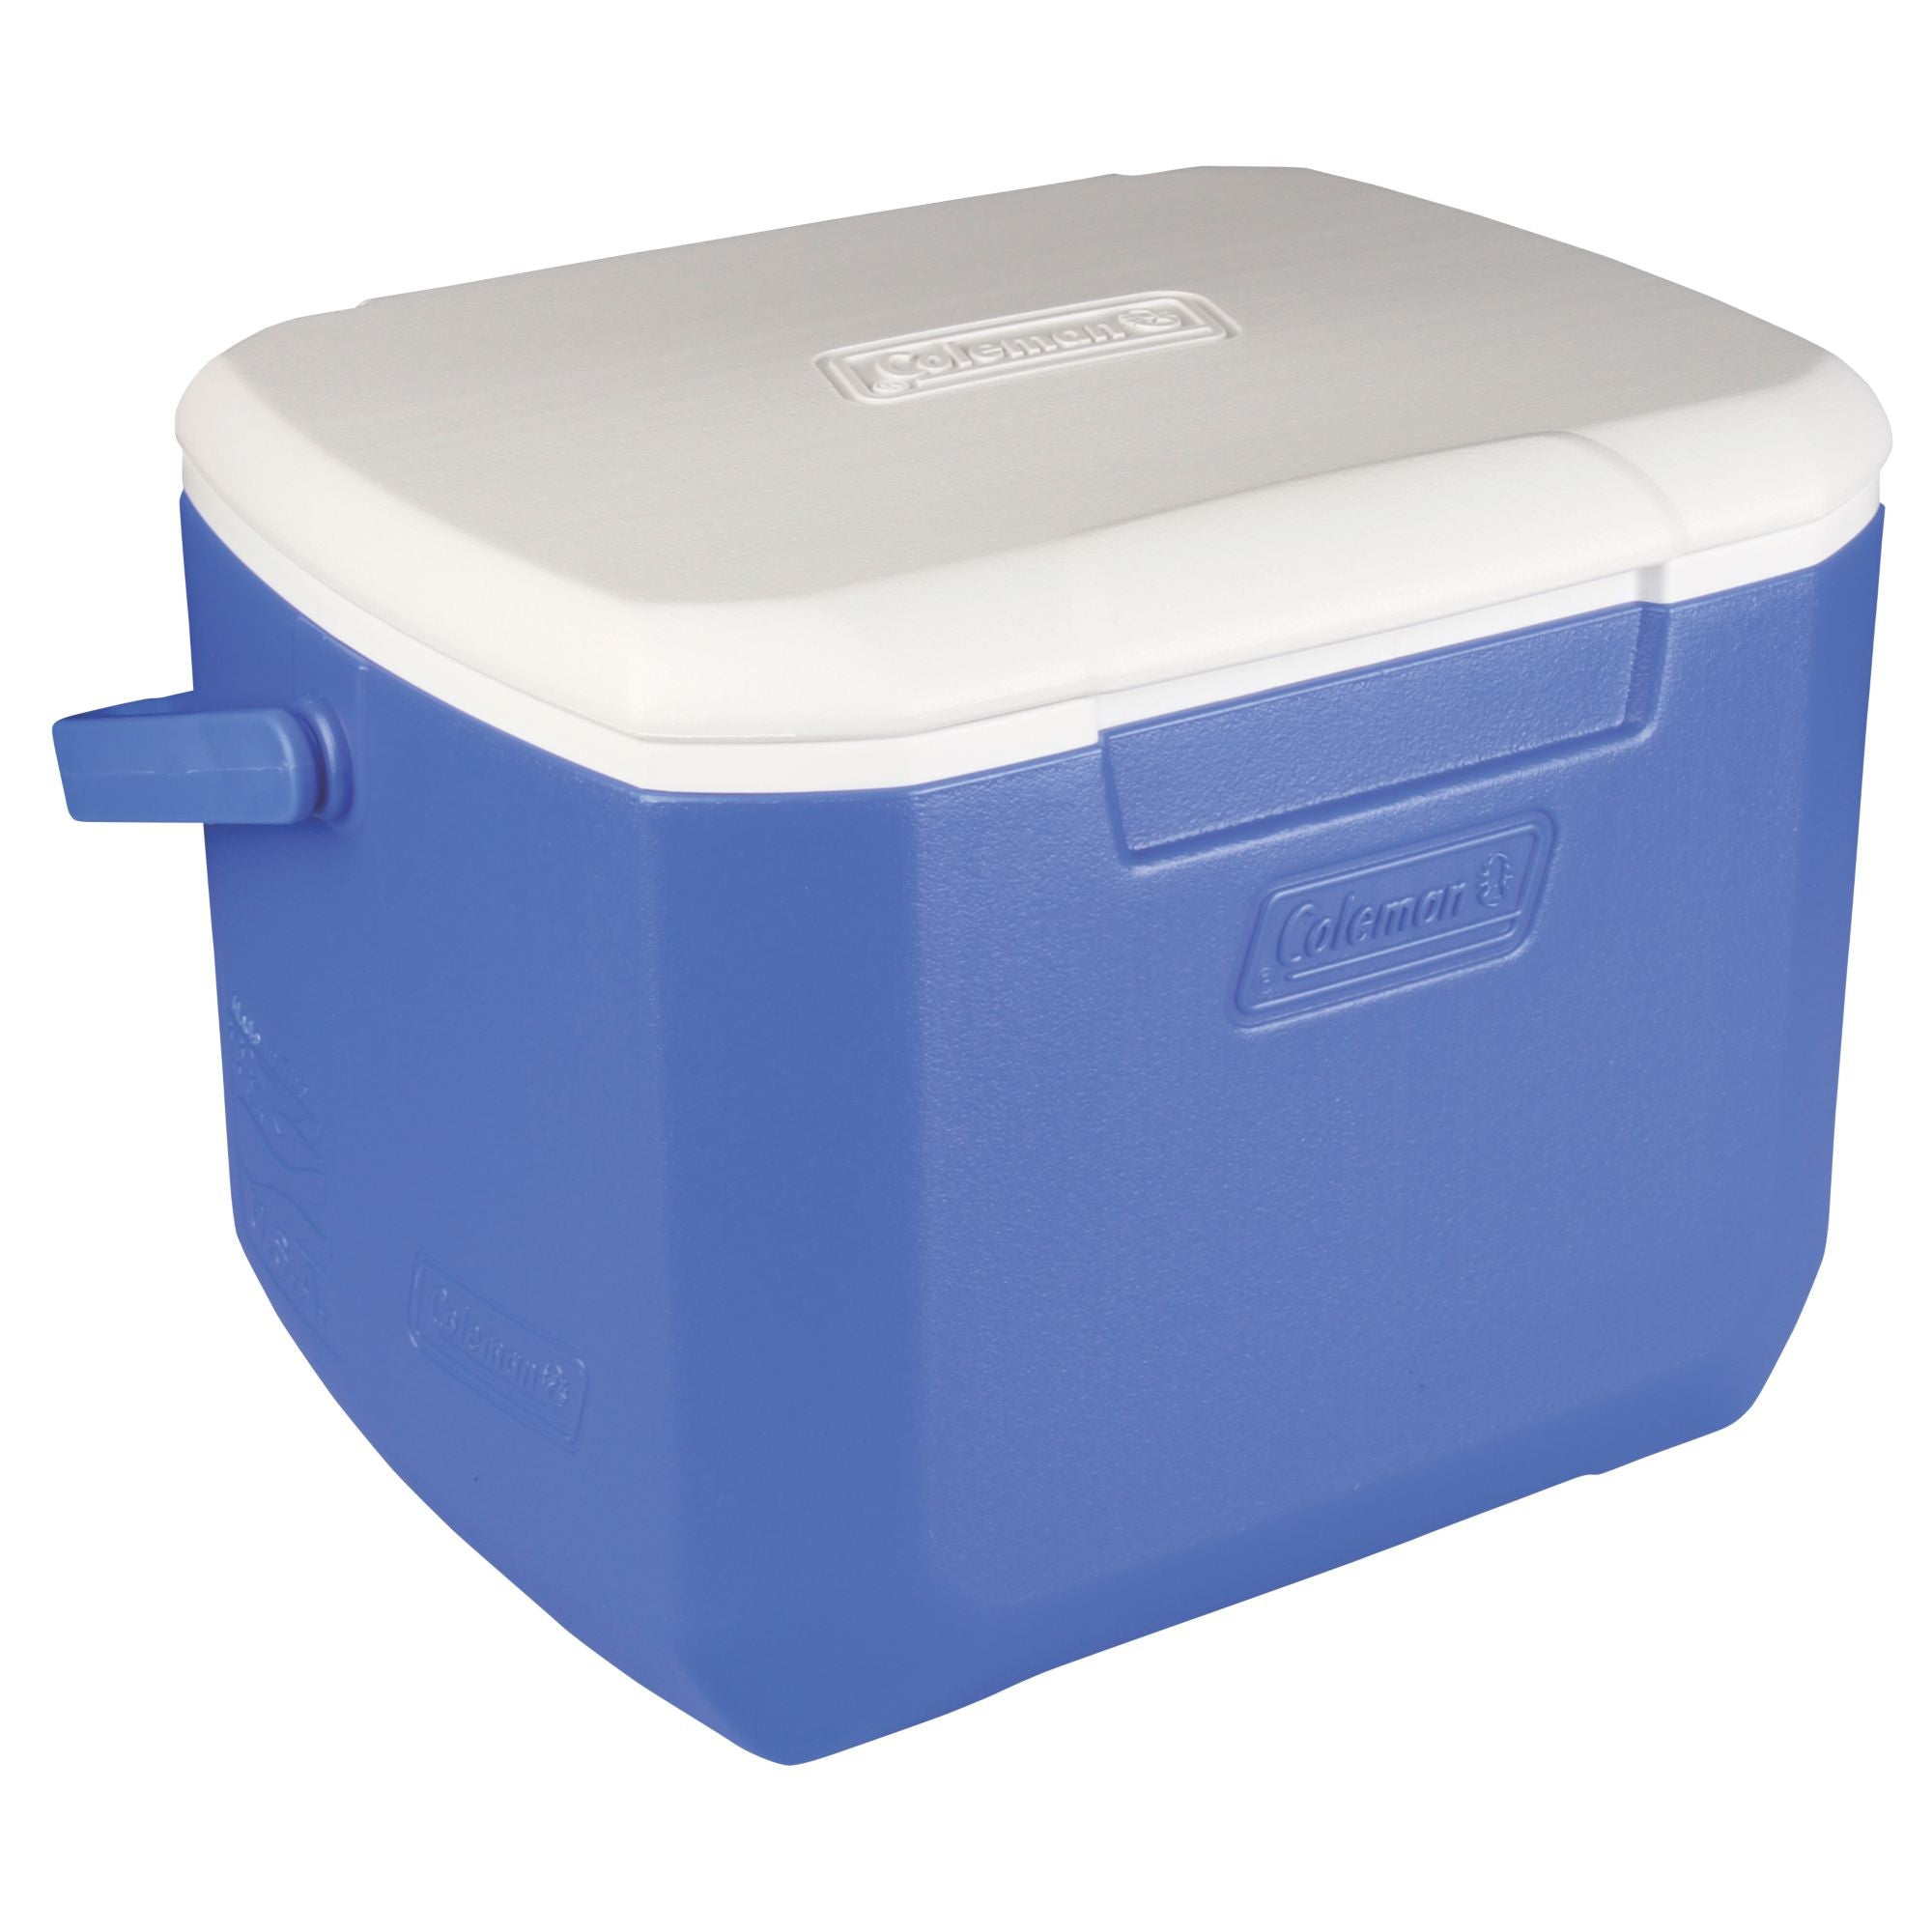 Coleman 16Qt/15 Liters Excursion Cooler (Blue) - Ayudh Sports LLP  - 2